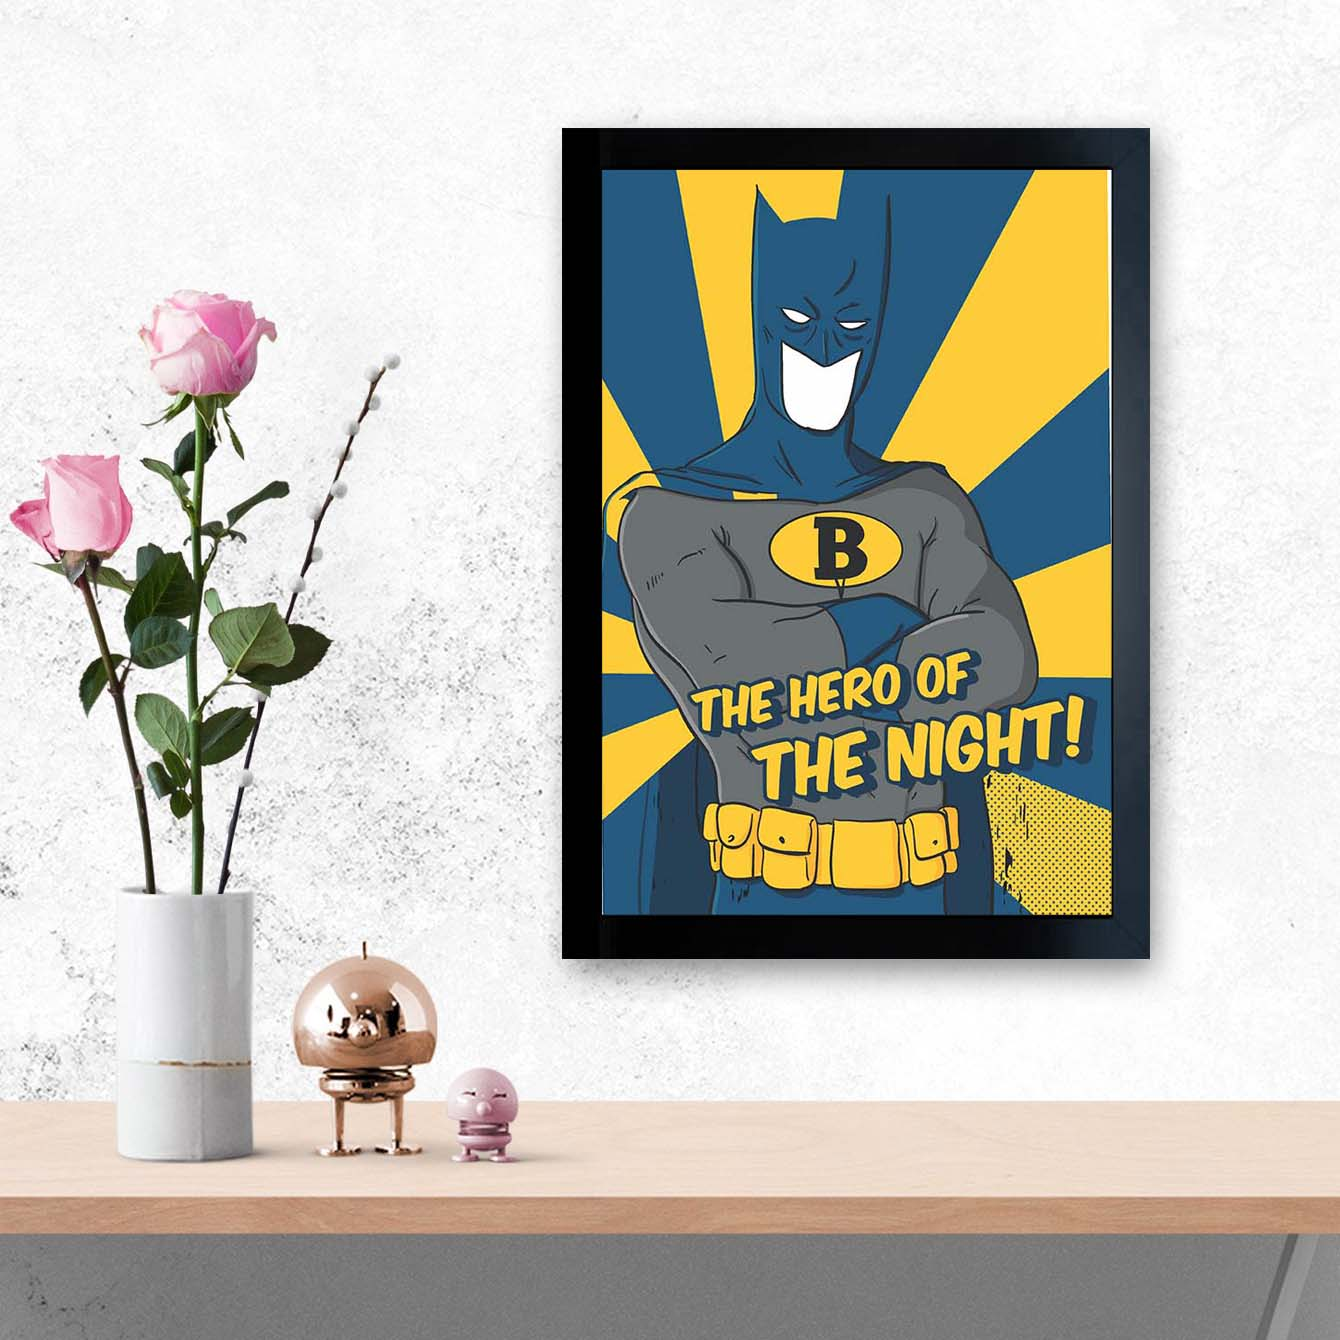 Bat Man Pop Art Glass Framed Posters & Artprints